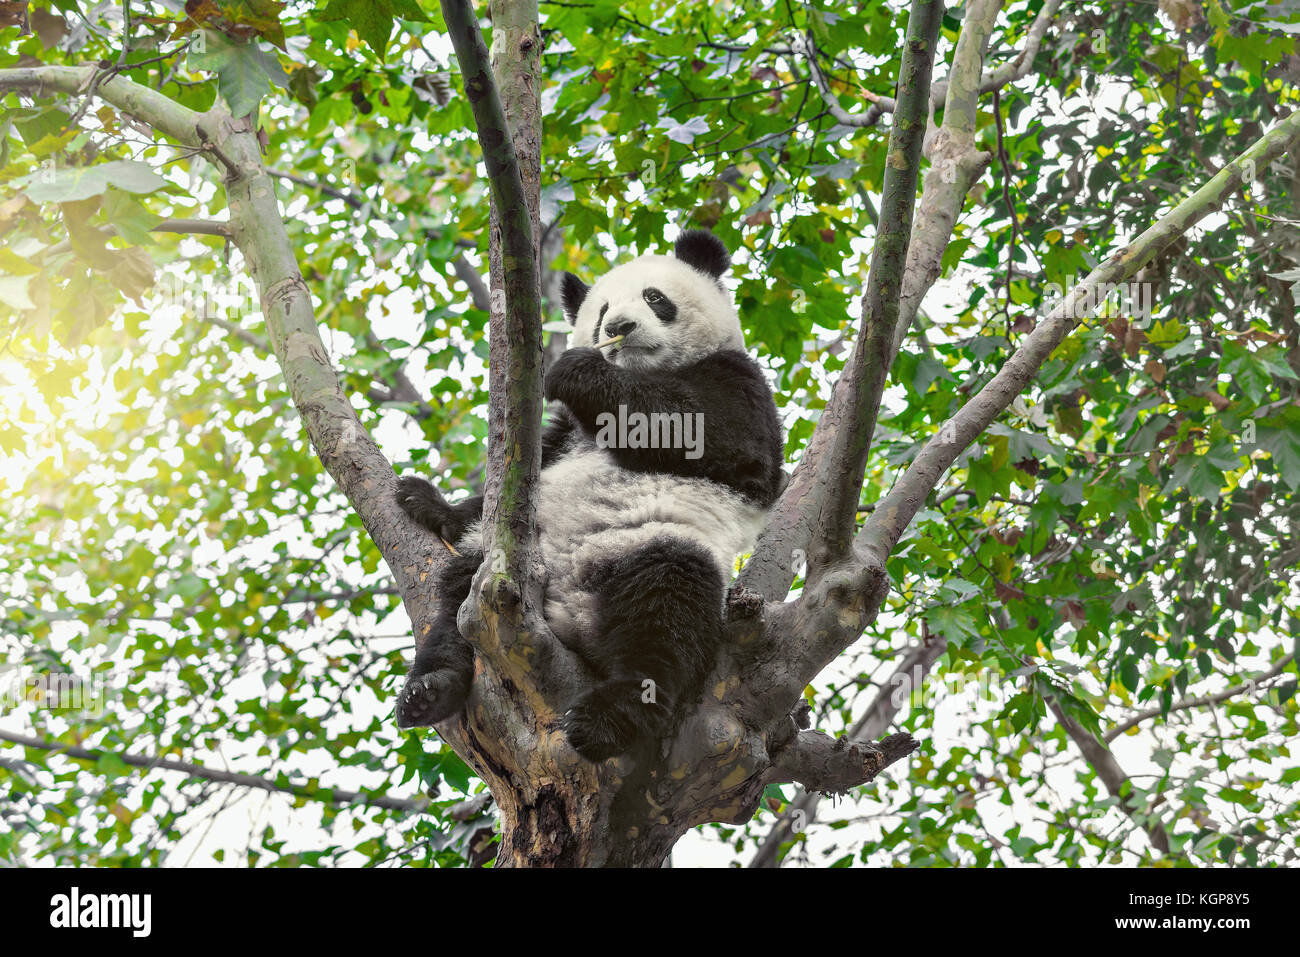 Giant Panda sits on the tree brunch and eats bamboo. - Stock Image